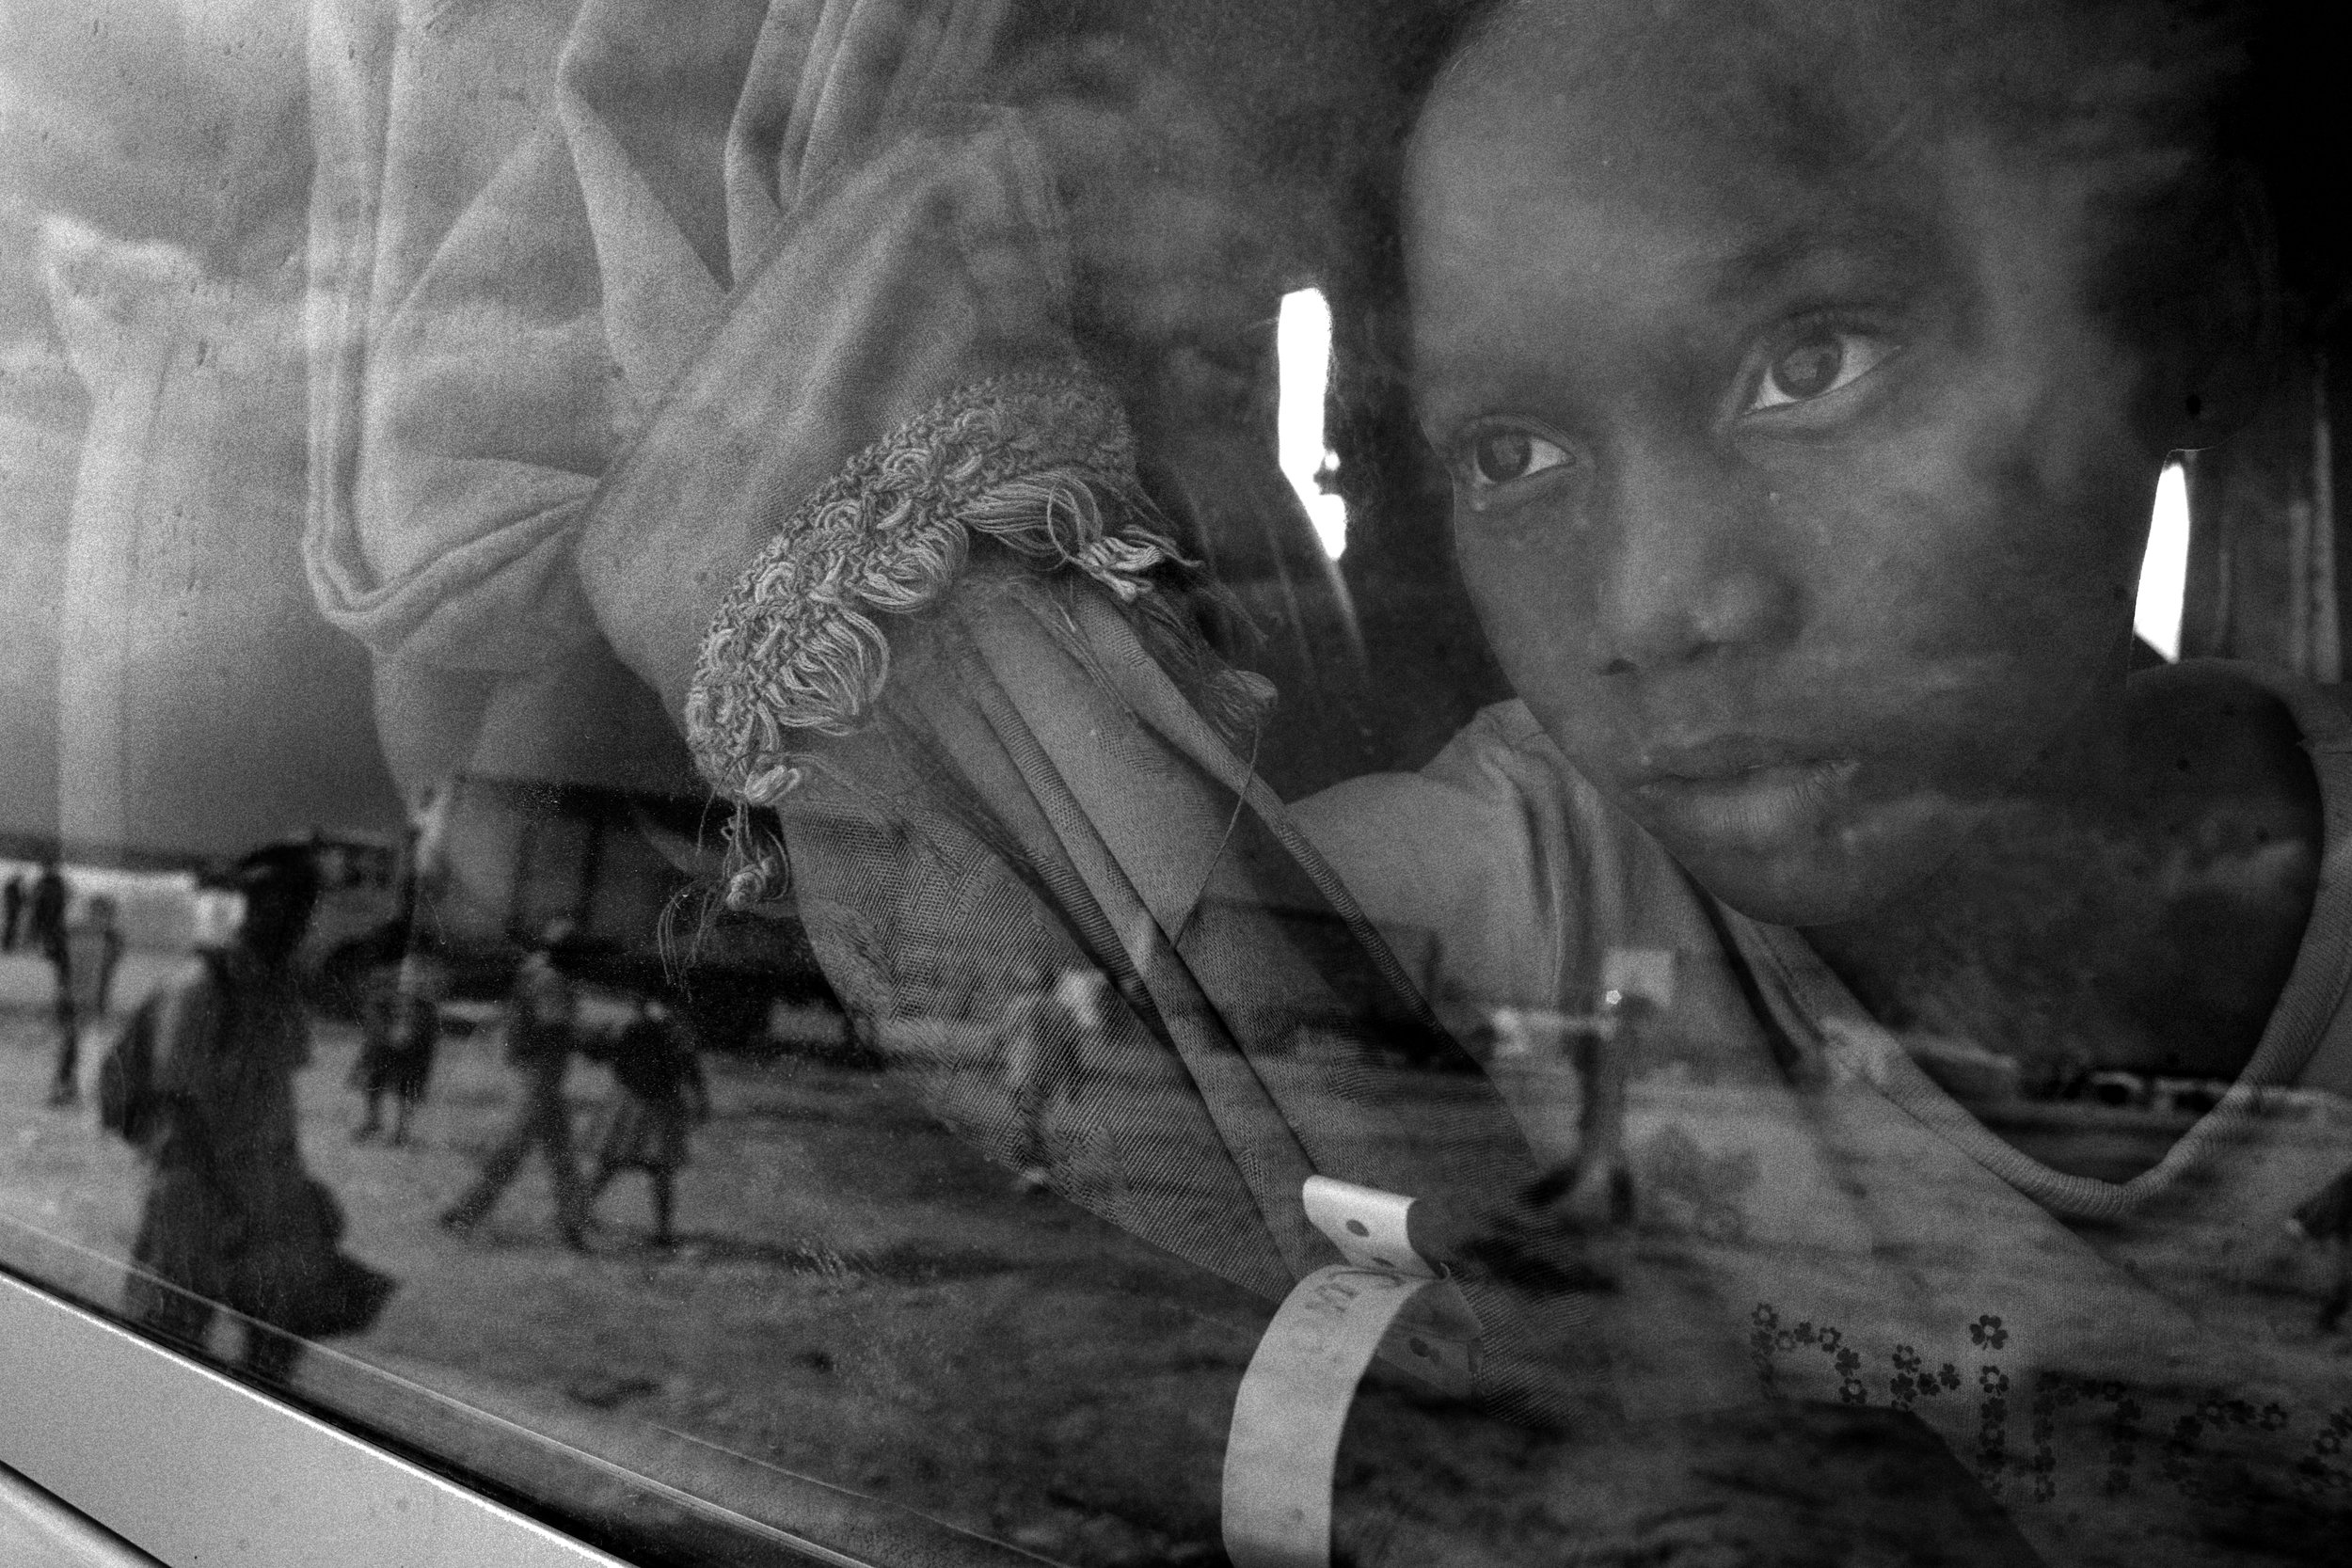 January 25, 2018   Haiti remembrance #7  I end this series of posts in the same place I began 7 pictures ago. This was the first moment a girl who was just arriving at the Corail-Cesselesse took in her austere surroundings in the camp that was shut off from so much of the rest of the nation. This place was supposed to be better, but it wasn't, an epic failure of the United Nations to secure better living conditions for those who were displaced in the earthquake. I wish I knew what she was thinking—regardless I found her beautiful and strong and deserving of better. When I opened the shutter for this picture I wish she had been arriving at a better place where she could realize a life and all of its possibilities and thus further contribute to all of our lives collectively making this world a better place. To that end, we do not need aid, perse, but an ability to recognize people's potential and invest in it. The returns will be worth it—@mcsquealien  I had intended for these photos to be 7 consecutive photos, but I'm glad that they turned out as they have, addressing the unfortunate comments of this American president at length and not letting go of the need to keep pushing back over time.  The conditions in Haiti are hard, but the people make it anything but a shithole. It seems like a lifetime ago that that disrespectful word was uttered. Since then there have been tremendous @womensmarch, a government shutdown, more incendiary comments by the president, and the #Dreamers and still holding on for the opportunity to keep #dreaming in this country. The momentum has to keep going, there's no other option.  On a personal note, my mom was also taken to the emergency room during this time. She's fine. It was an overreaction to a cold, but in her 80s you can't be too careful. A Haitian cab driver took us there and wasted no time in getting us to the emergency room. Needless to say I was thankful for his help and appreciate the fact that because of his efforts my mom got 